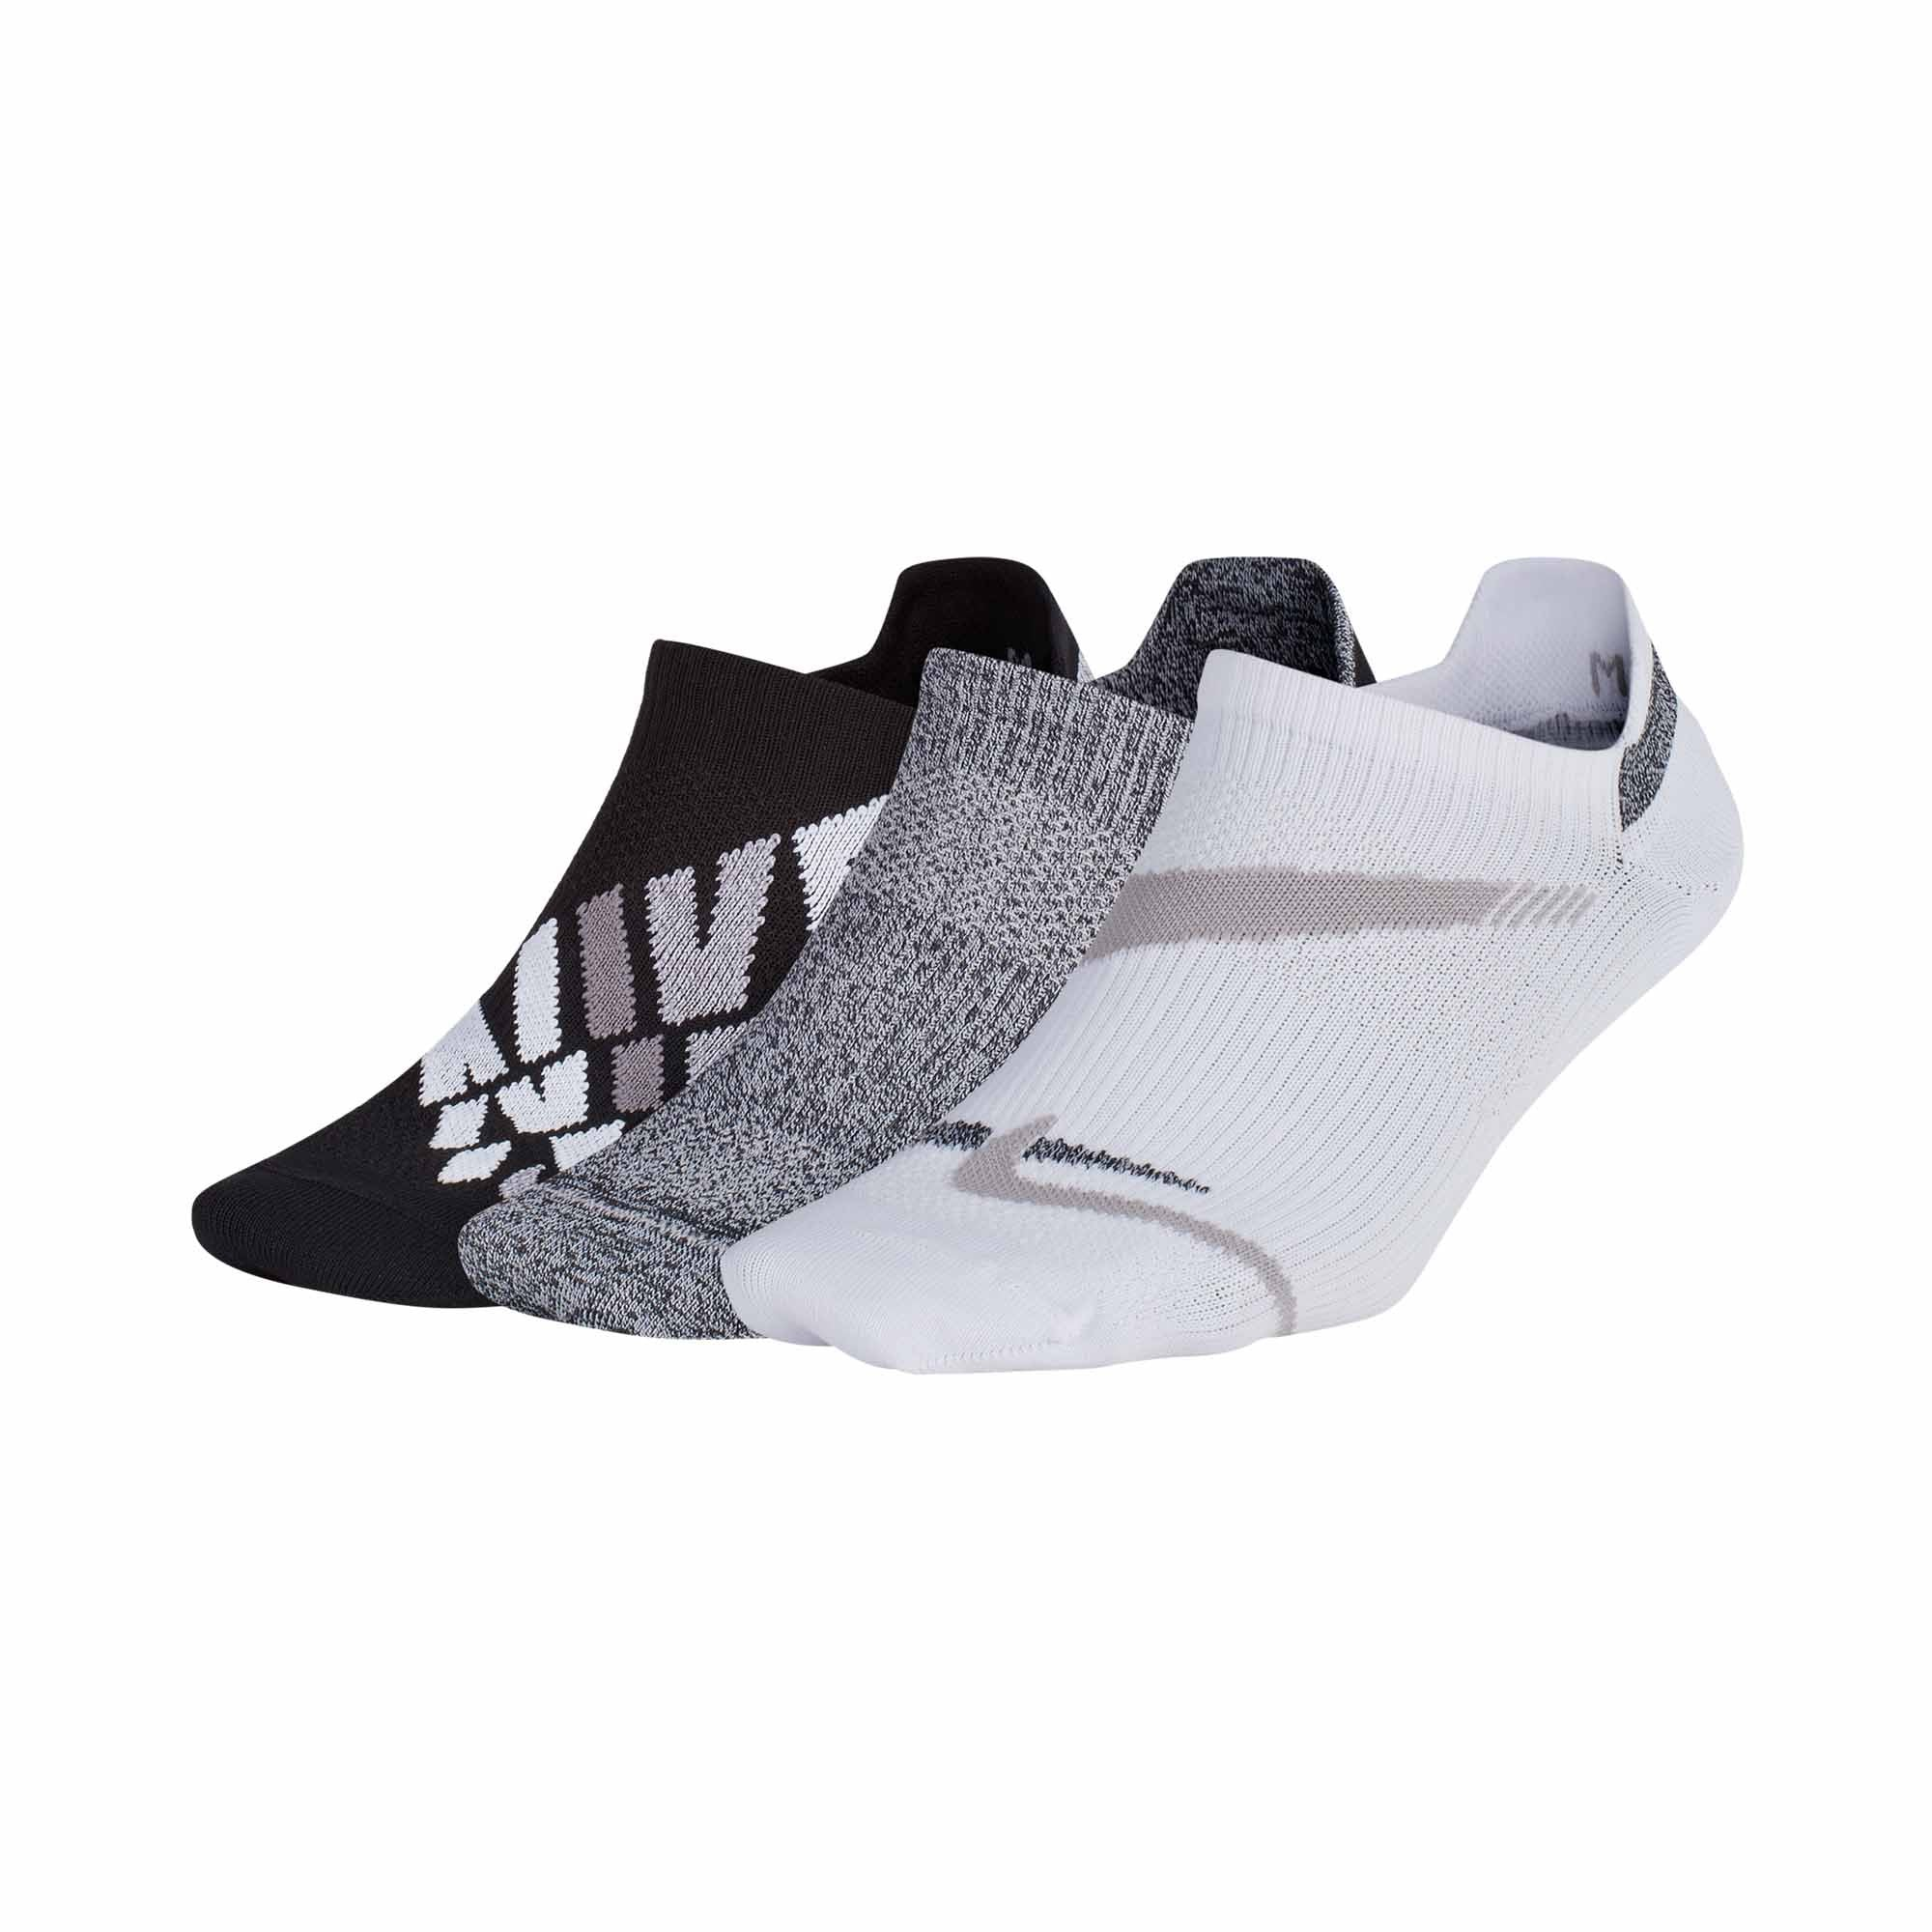 a1219674 Buy Nike Women Everyday Plus Lightweight No-Show Socks Online in Singapore  | Royal Sporting House